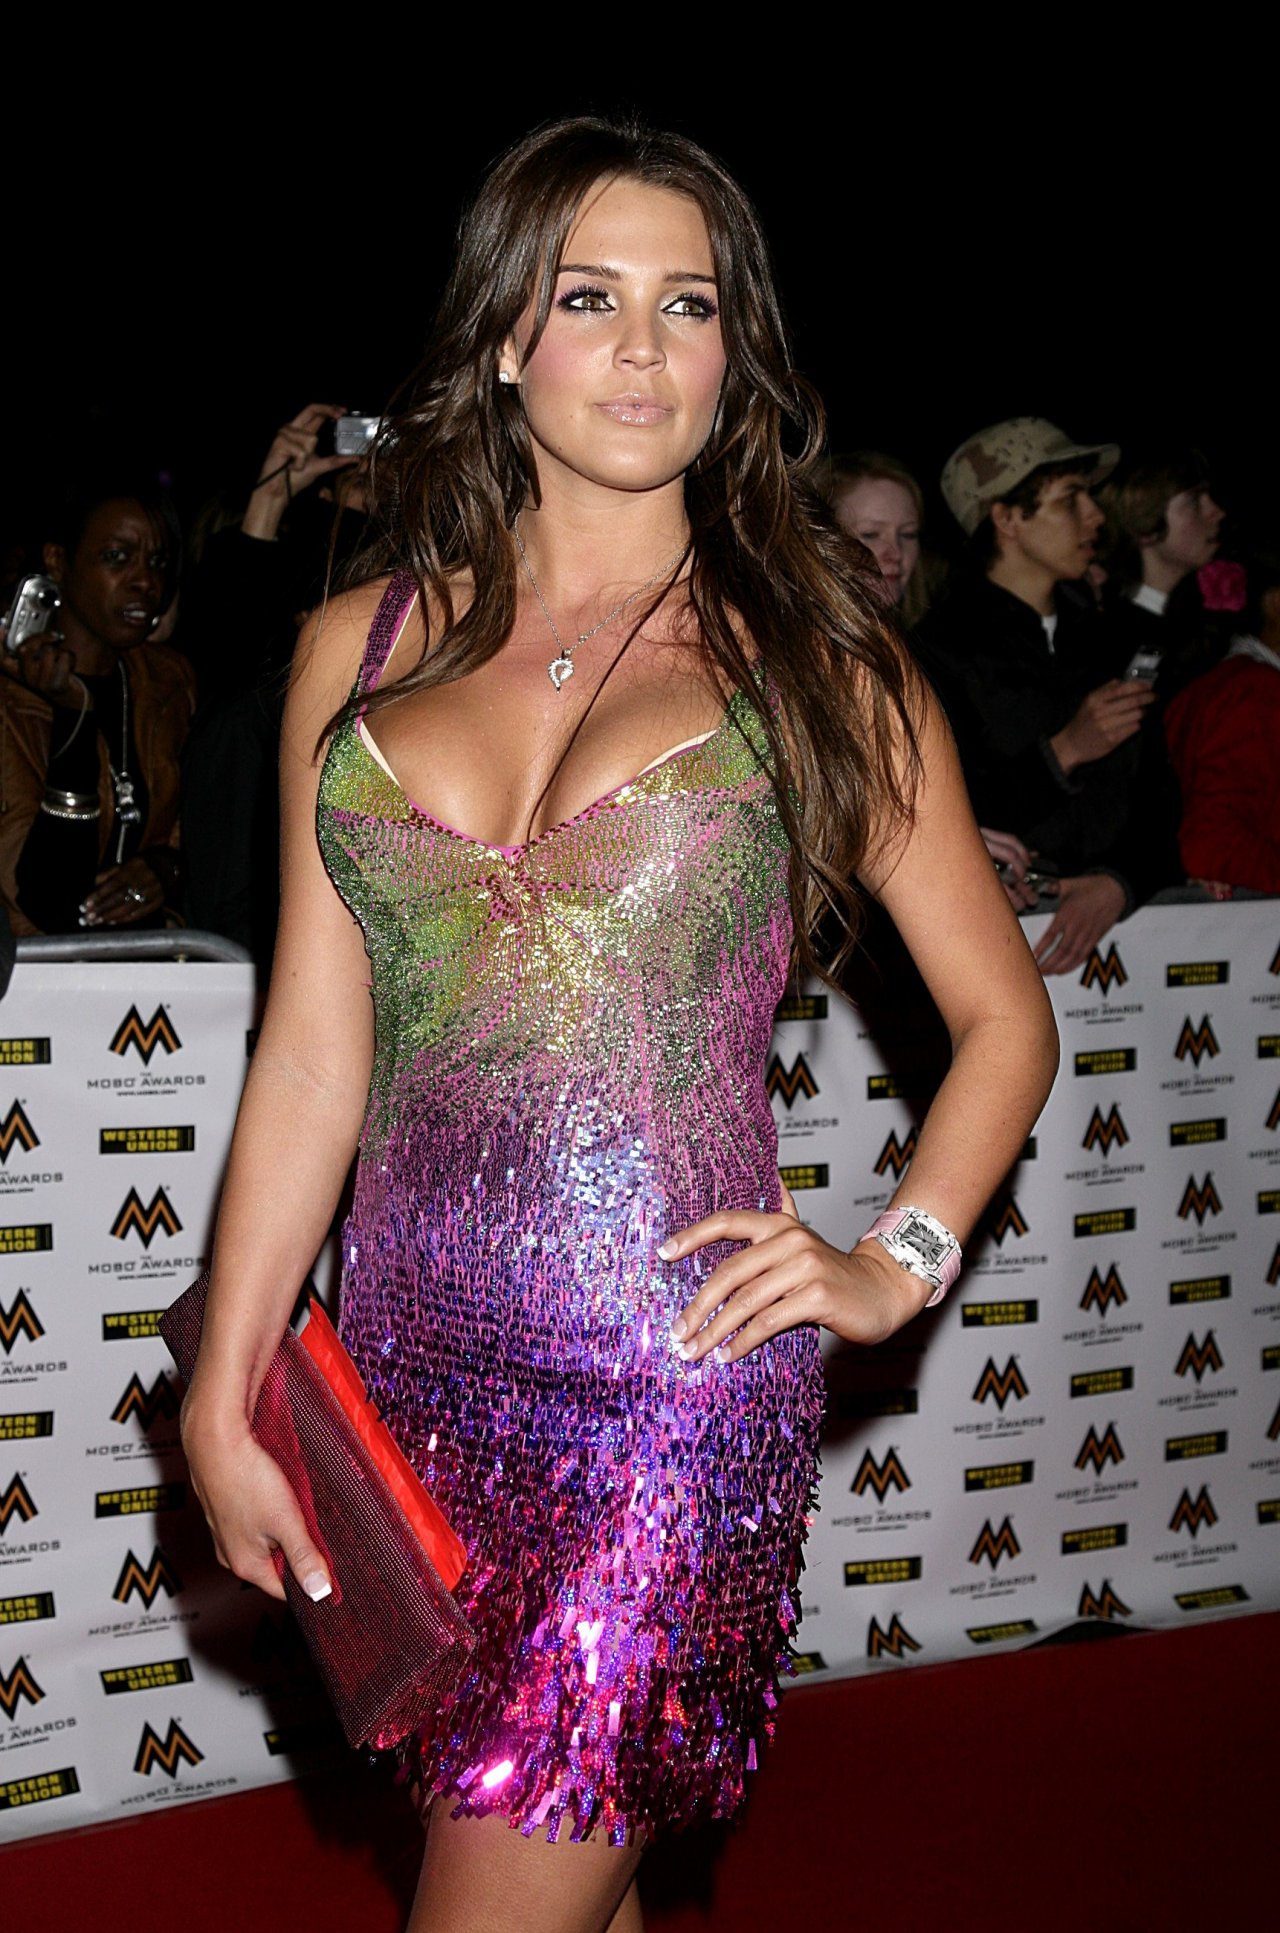 Danielle Lloyd leaked wallpapers